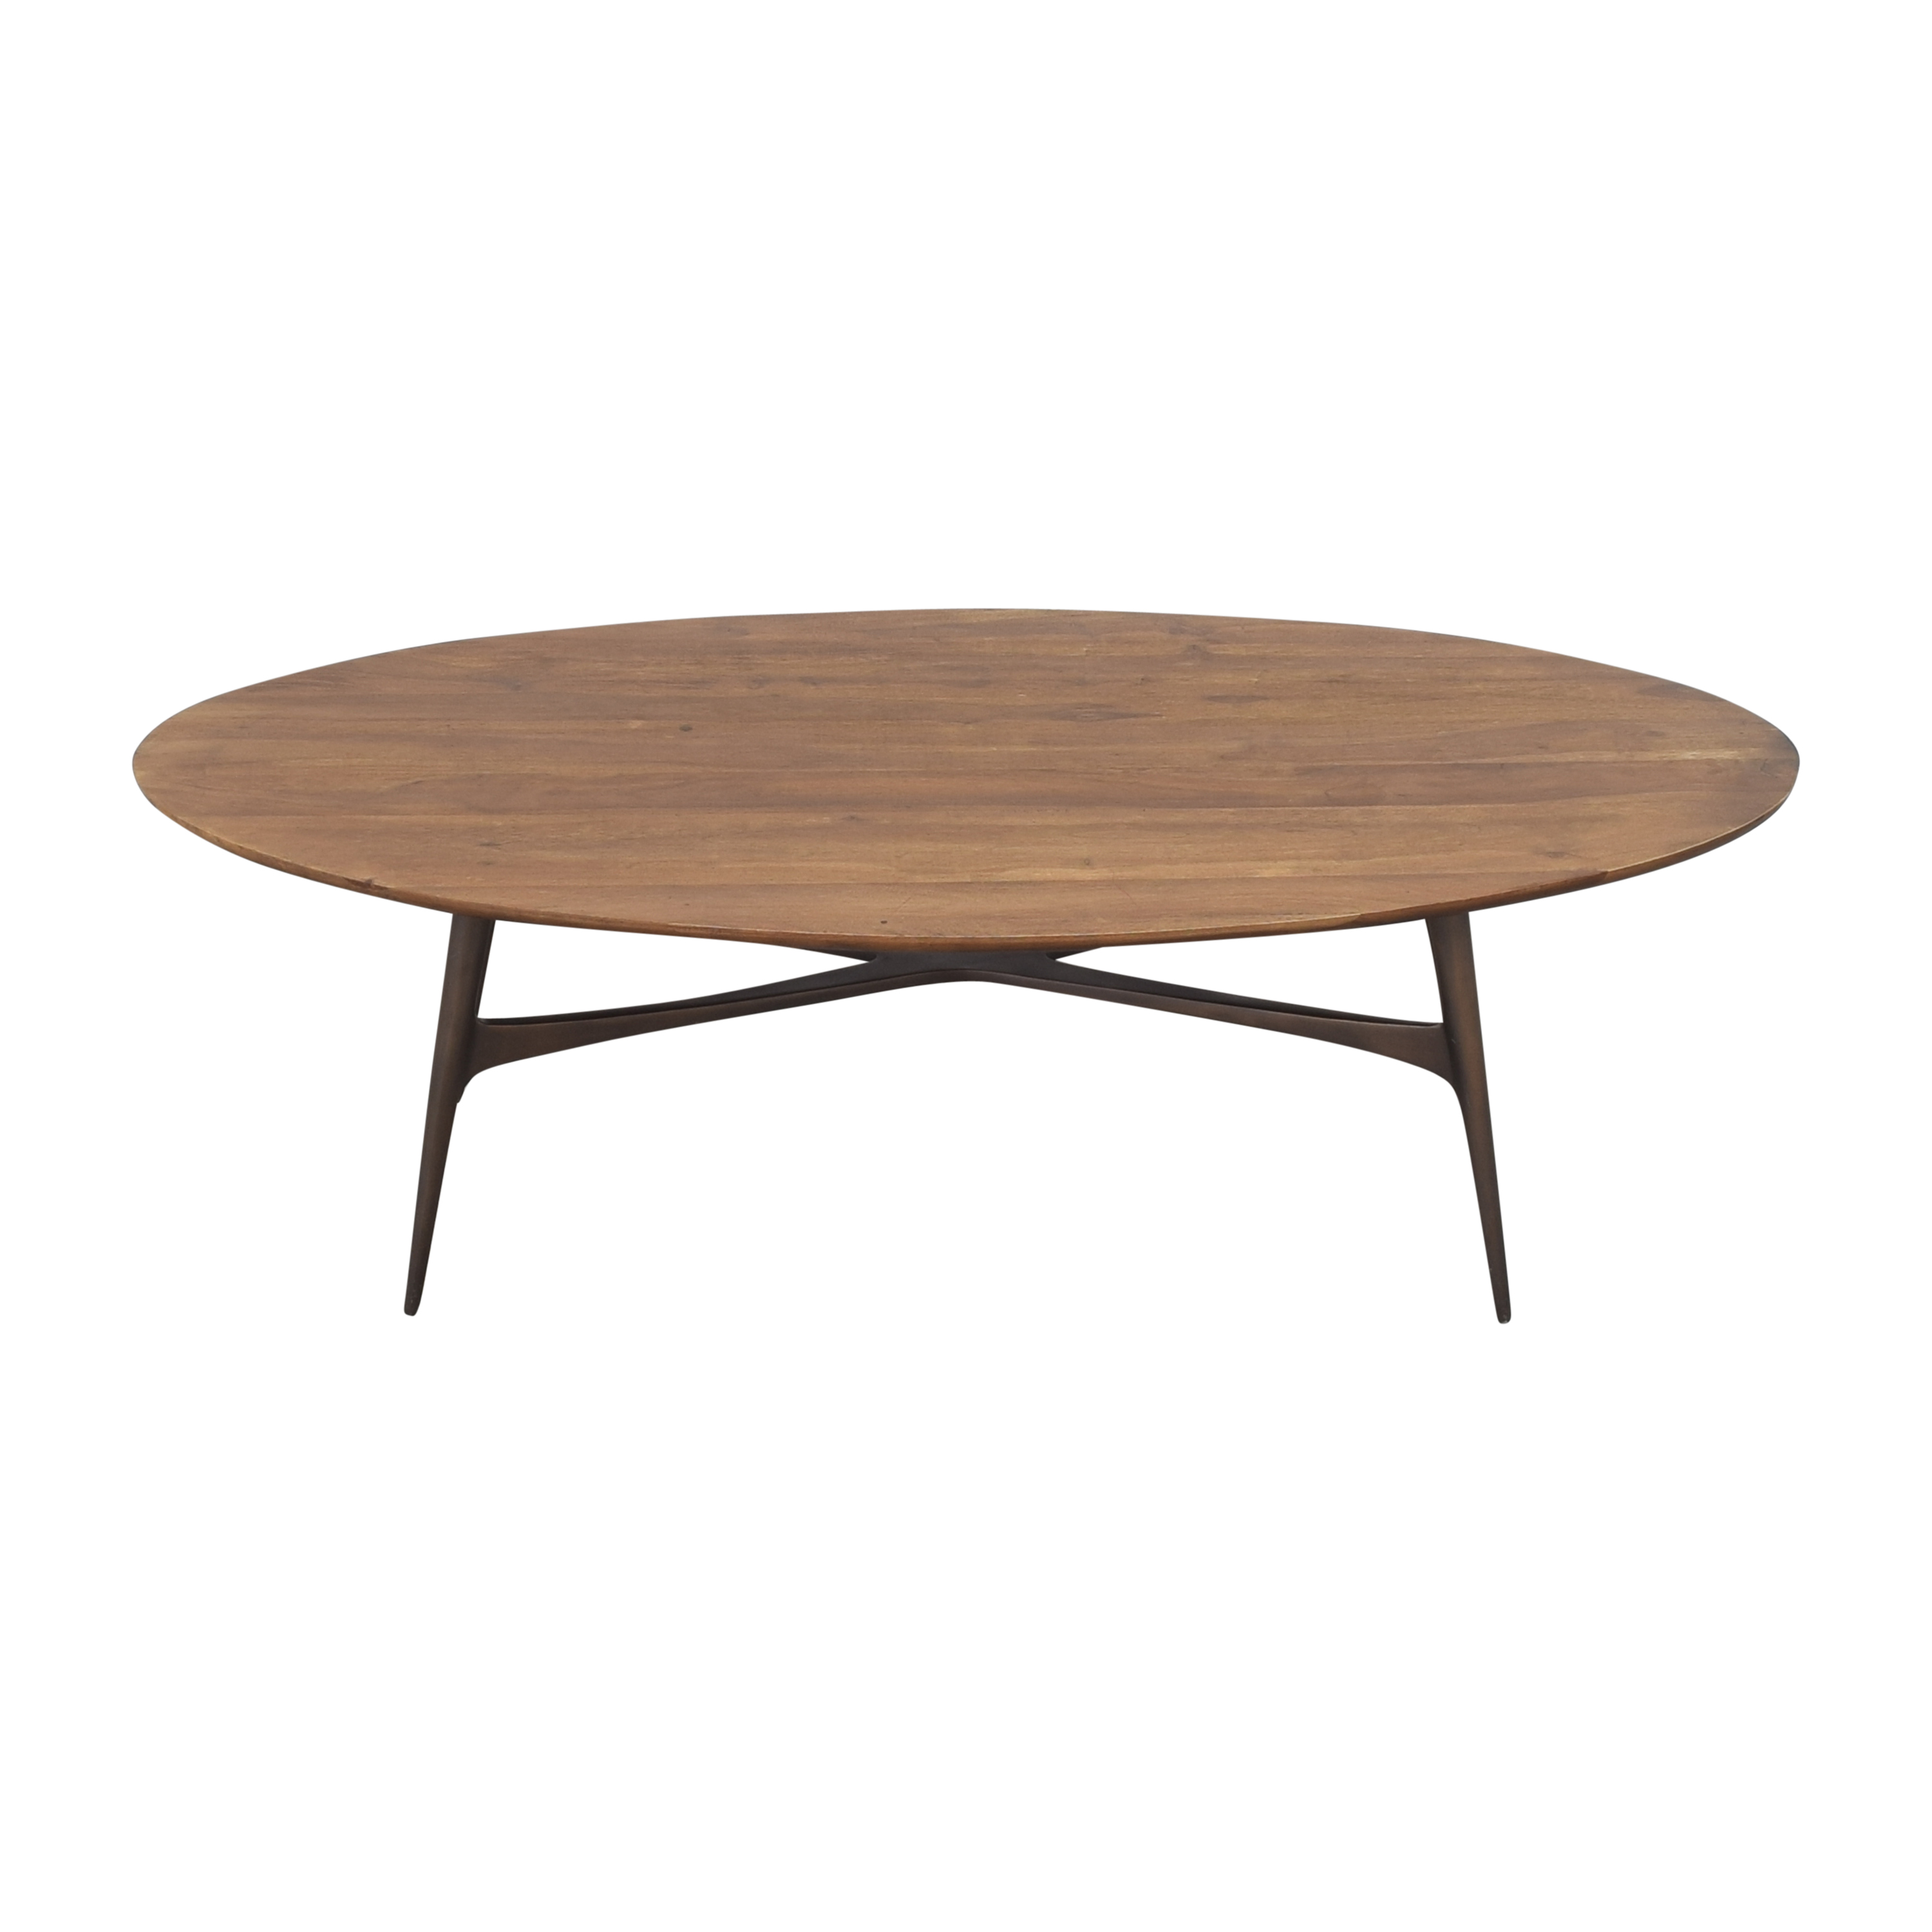 Crate & Barrel Crate & Barrel Bel Air Oval Coffee Table Tables